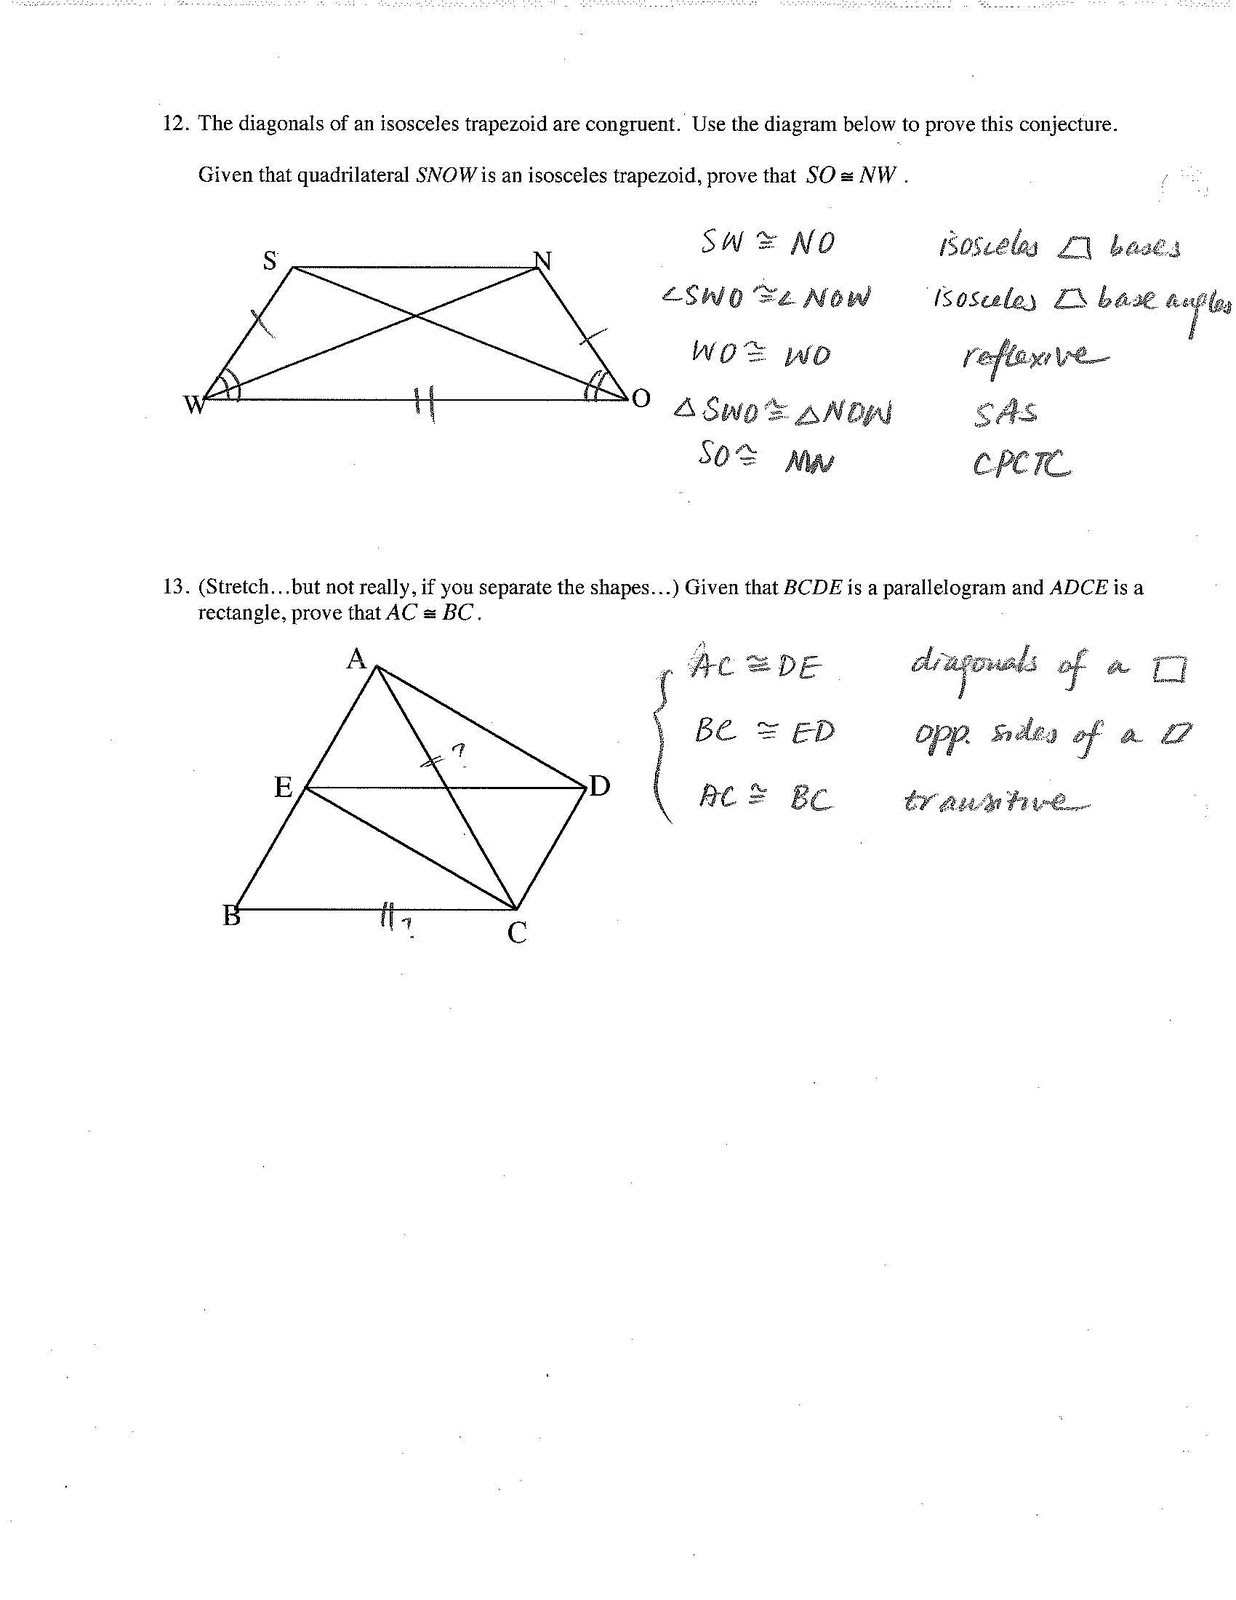 Unit 7 polygons and quadrilaterals homework 3 answer key [ 1600 x 1236 Pixel ]